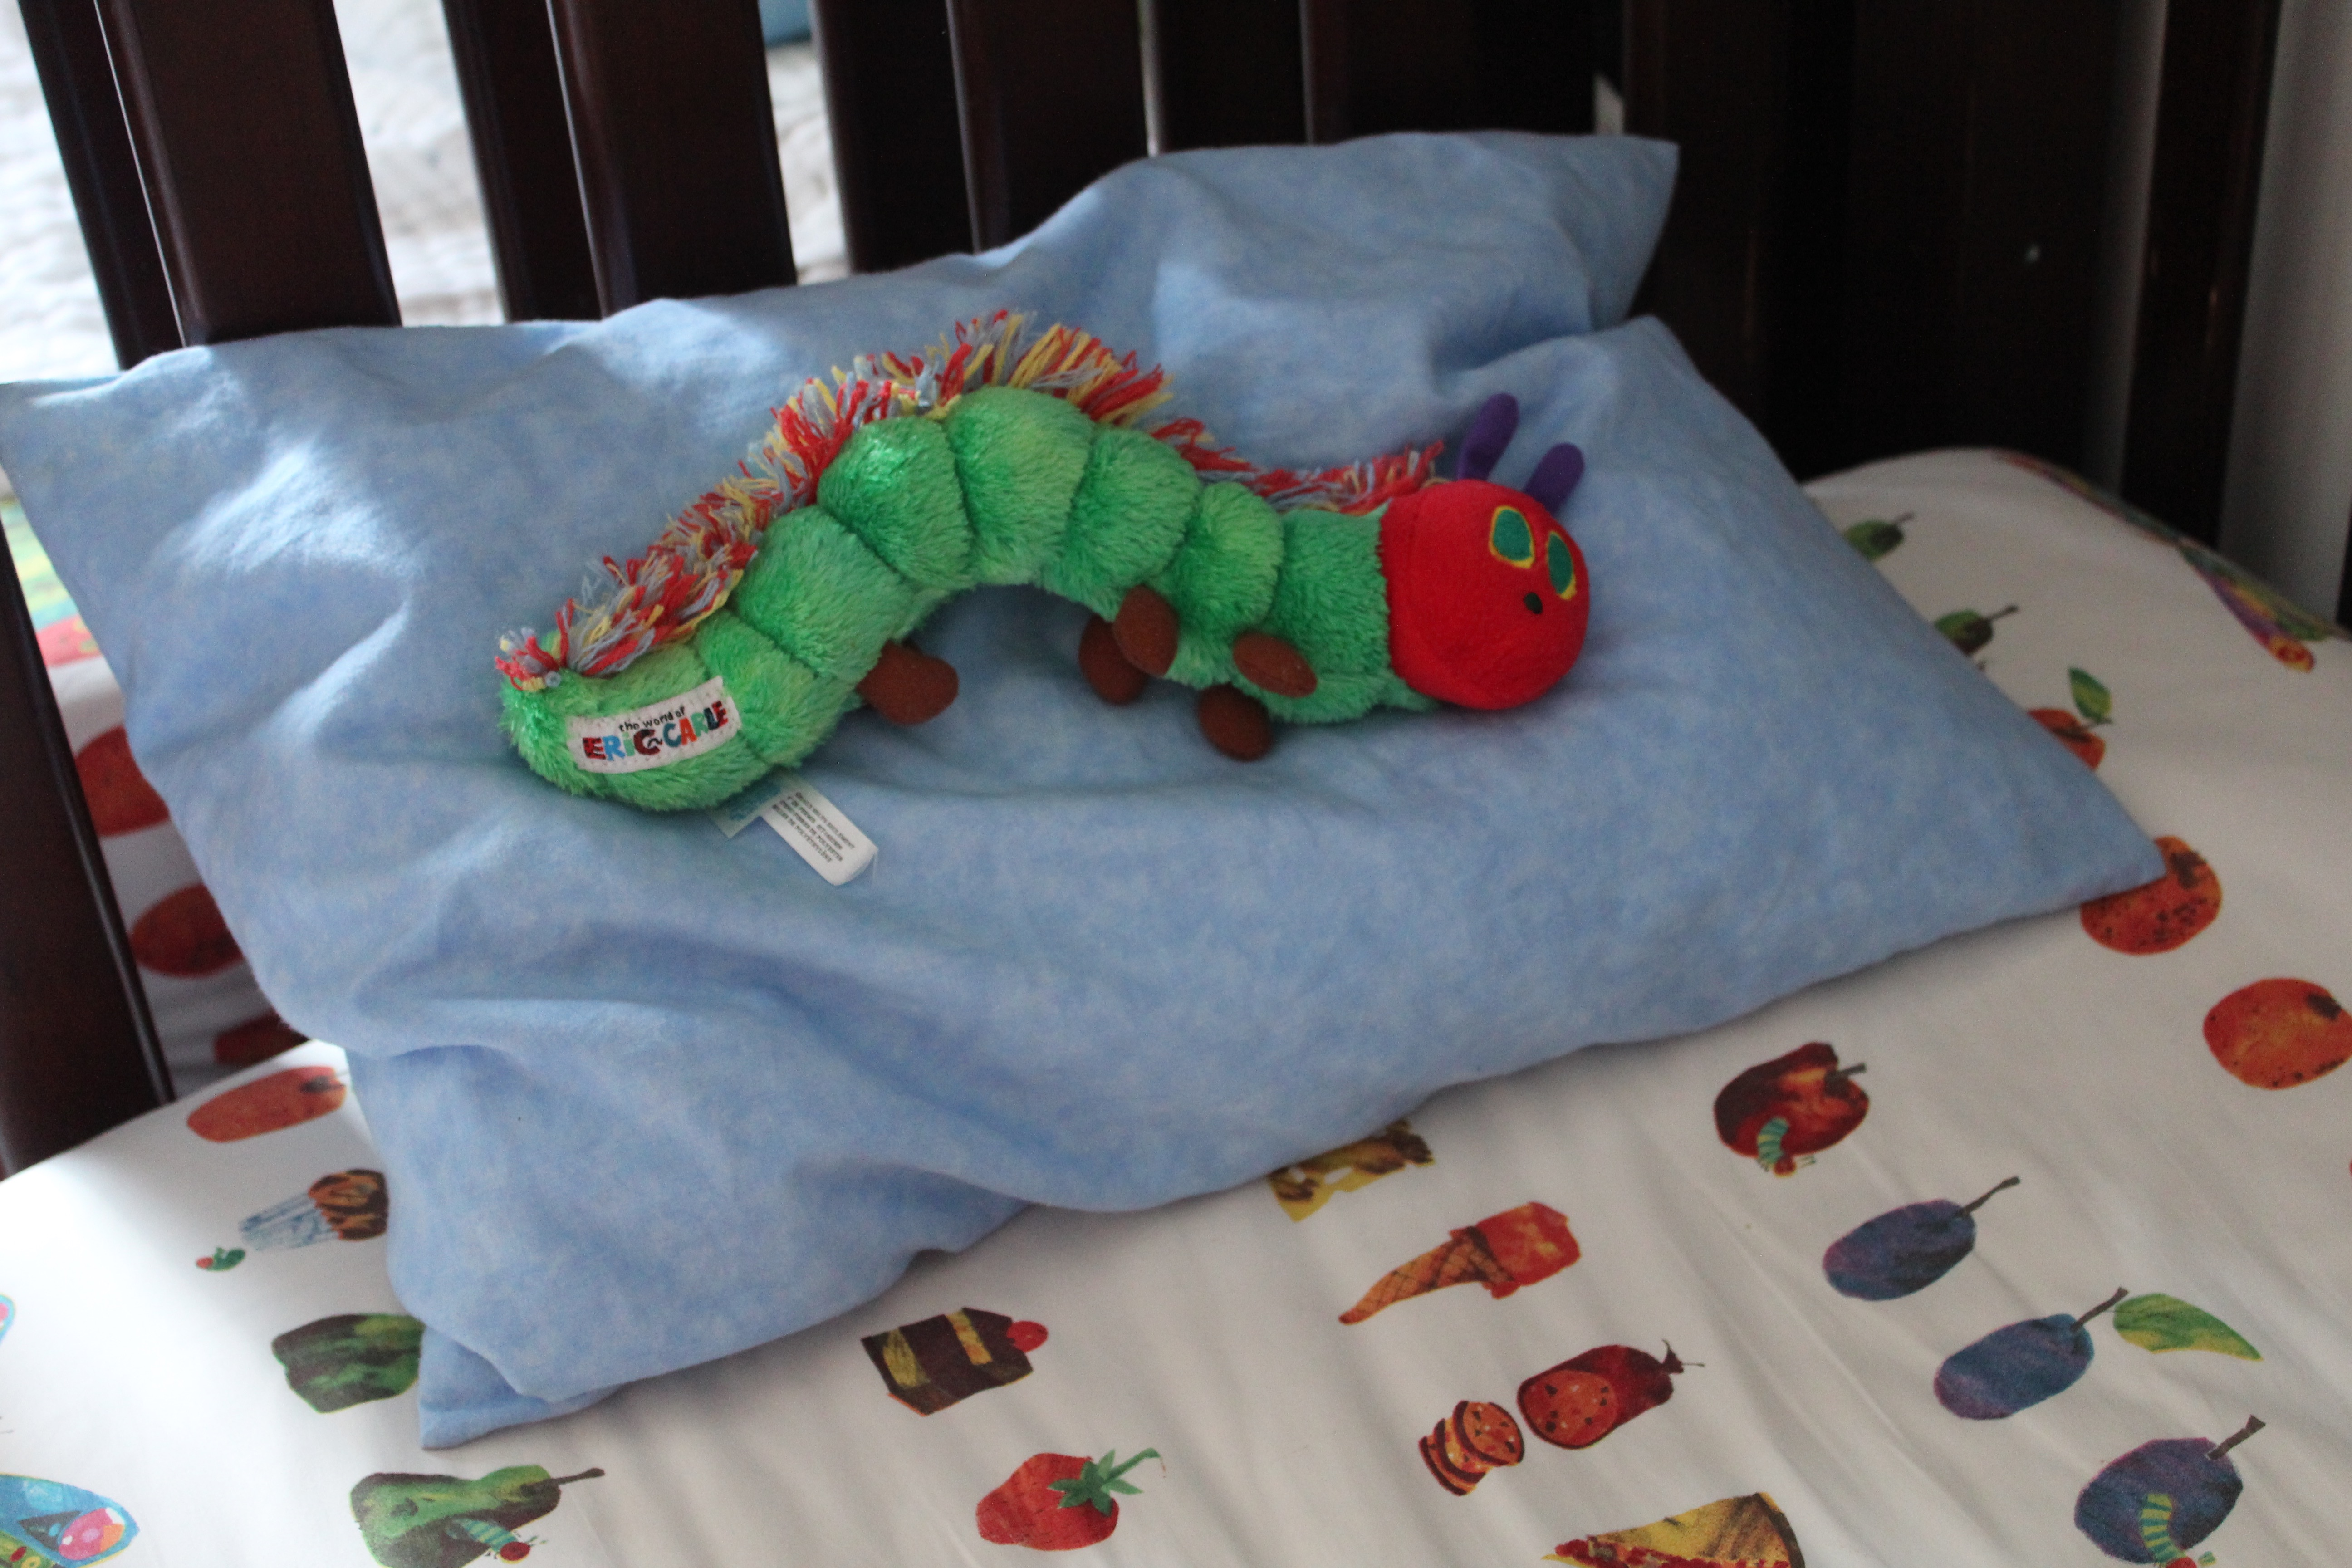 Very Hungry Caterpillar doll on Very Hungry Caterpillar bedspread.